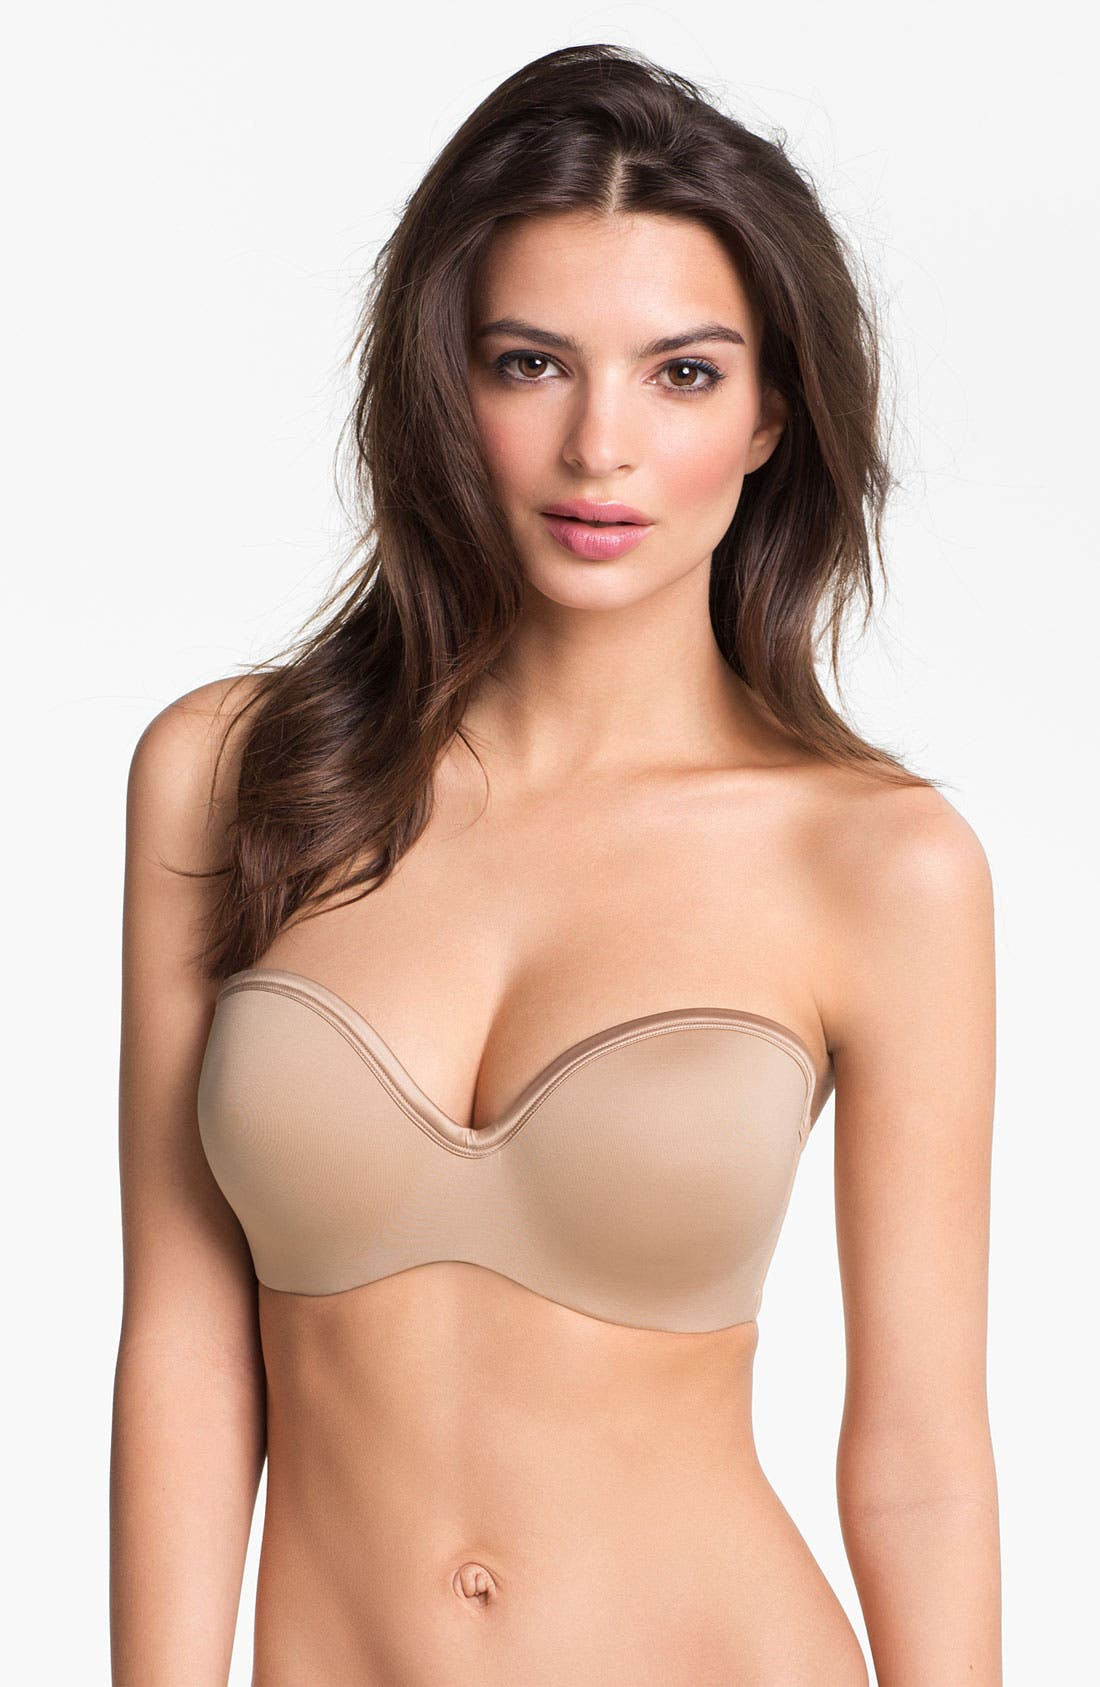 Alternate Image 1 Selected - Le Mystère No. 9 'Lolita' Convertible Strapless Underwire Bra